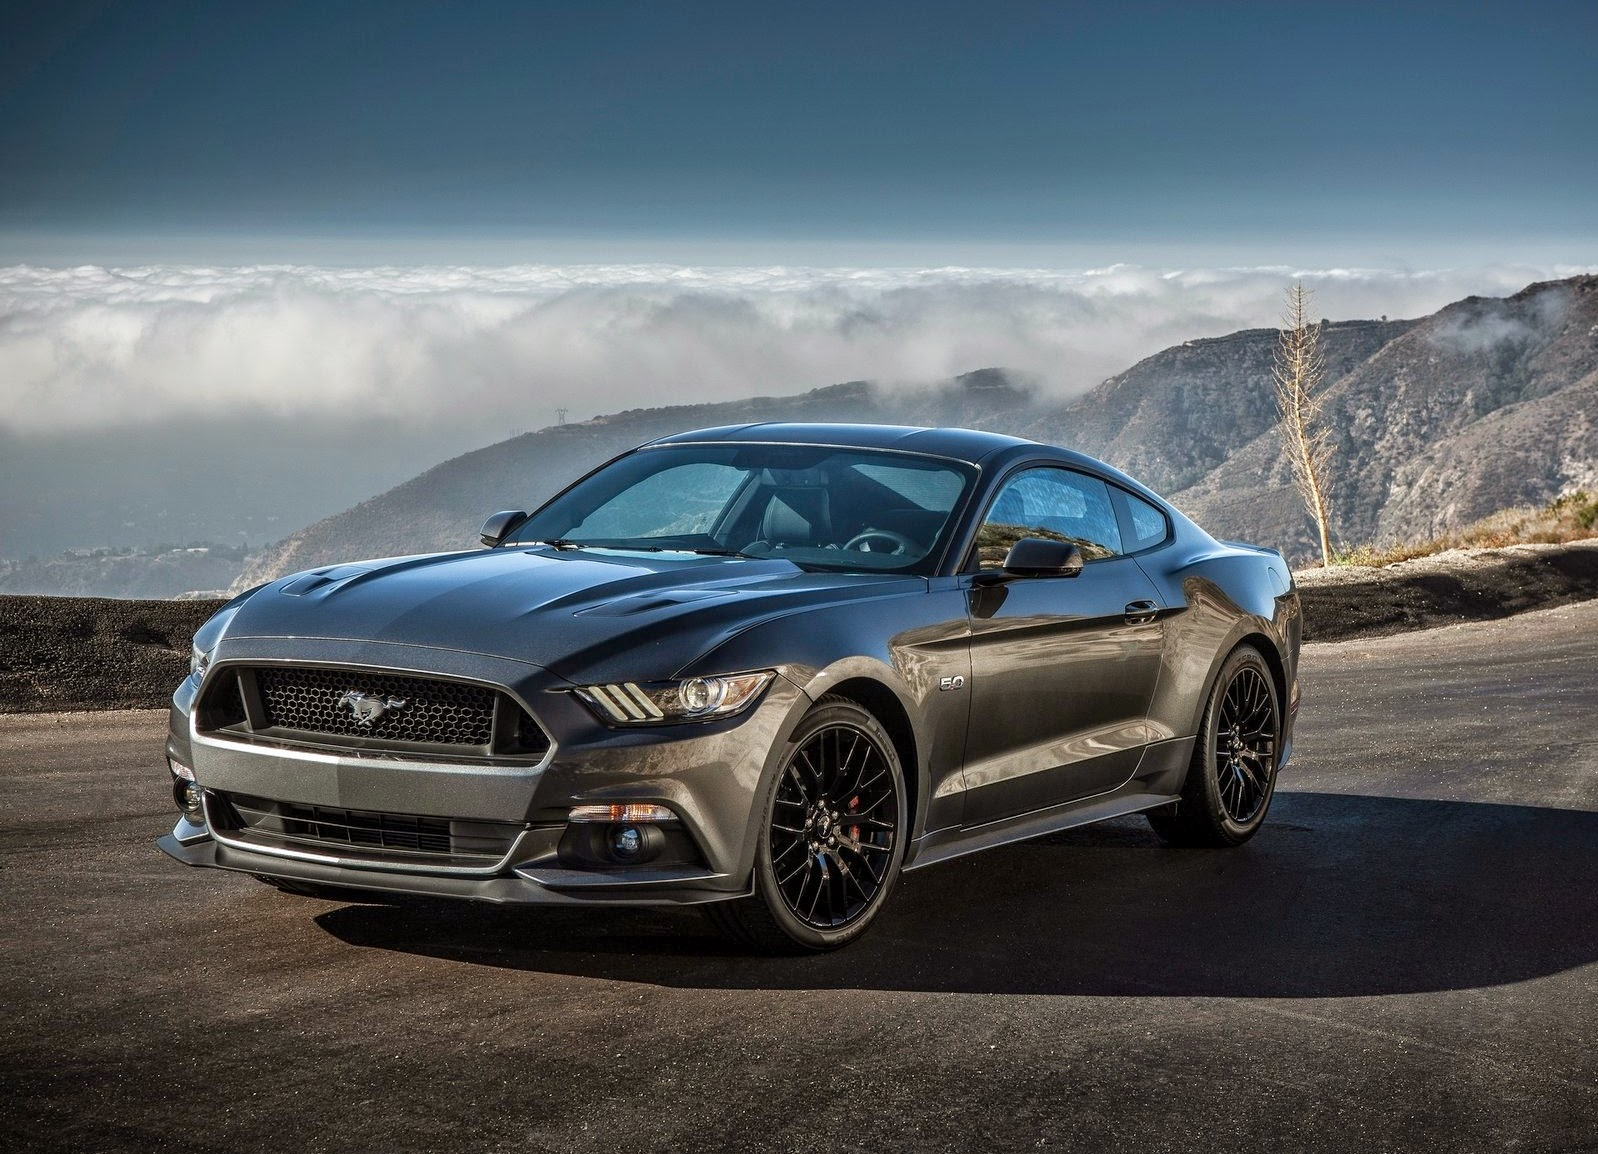 Ford Mustang GT Awesome HD Car Wallpaper ! Car Wallpaper HD